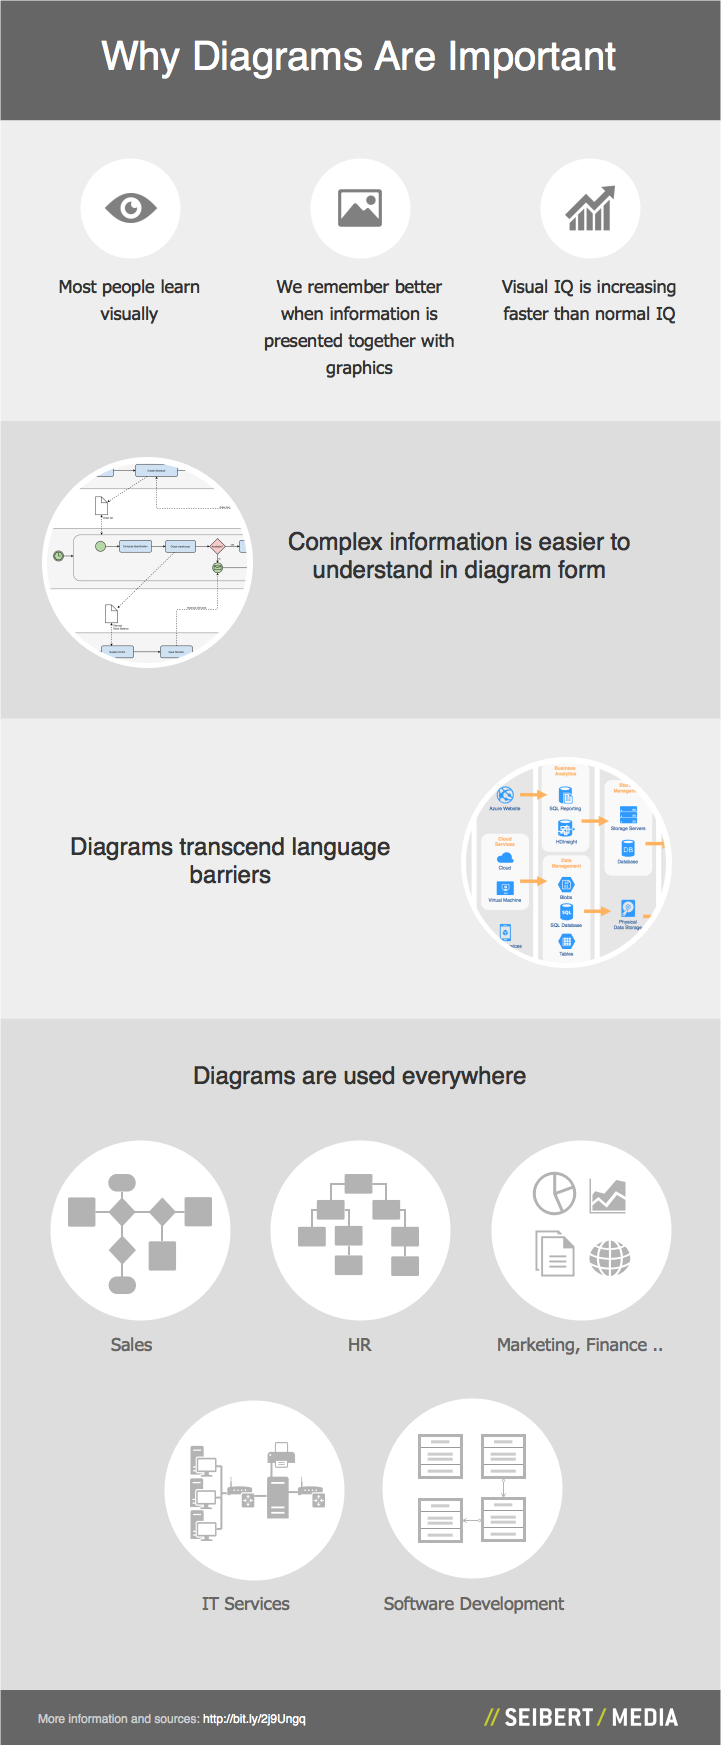 Why Diagrams Are Important Infographic